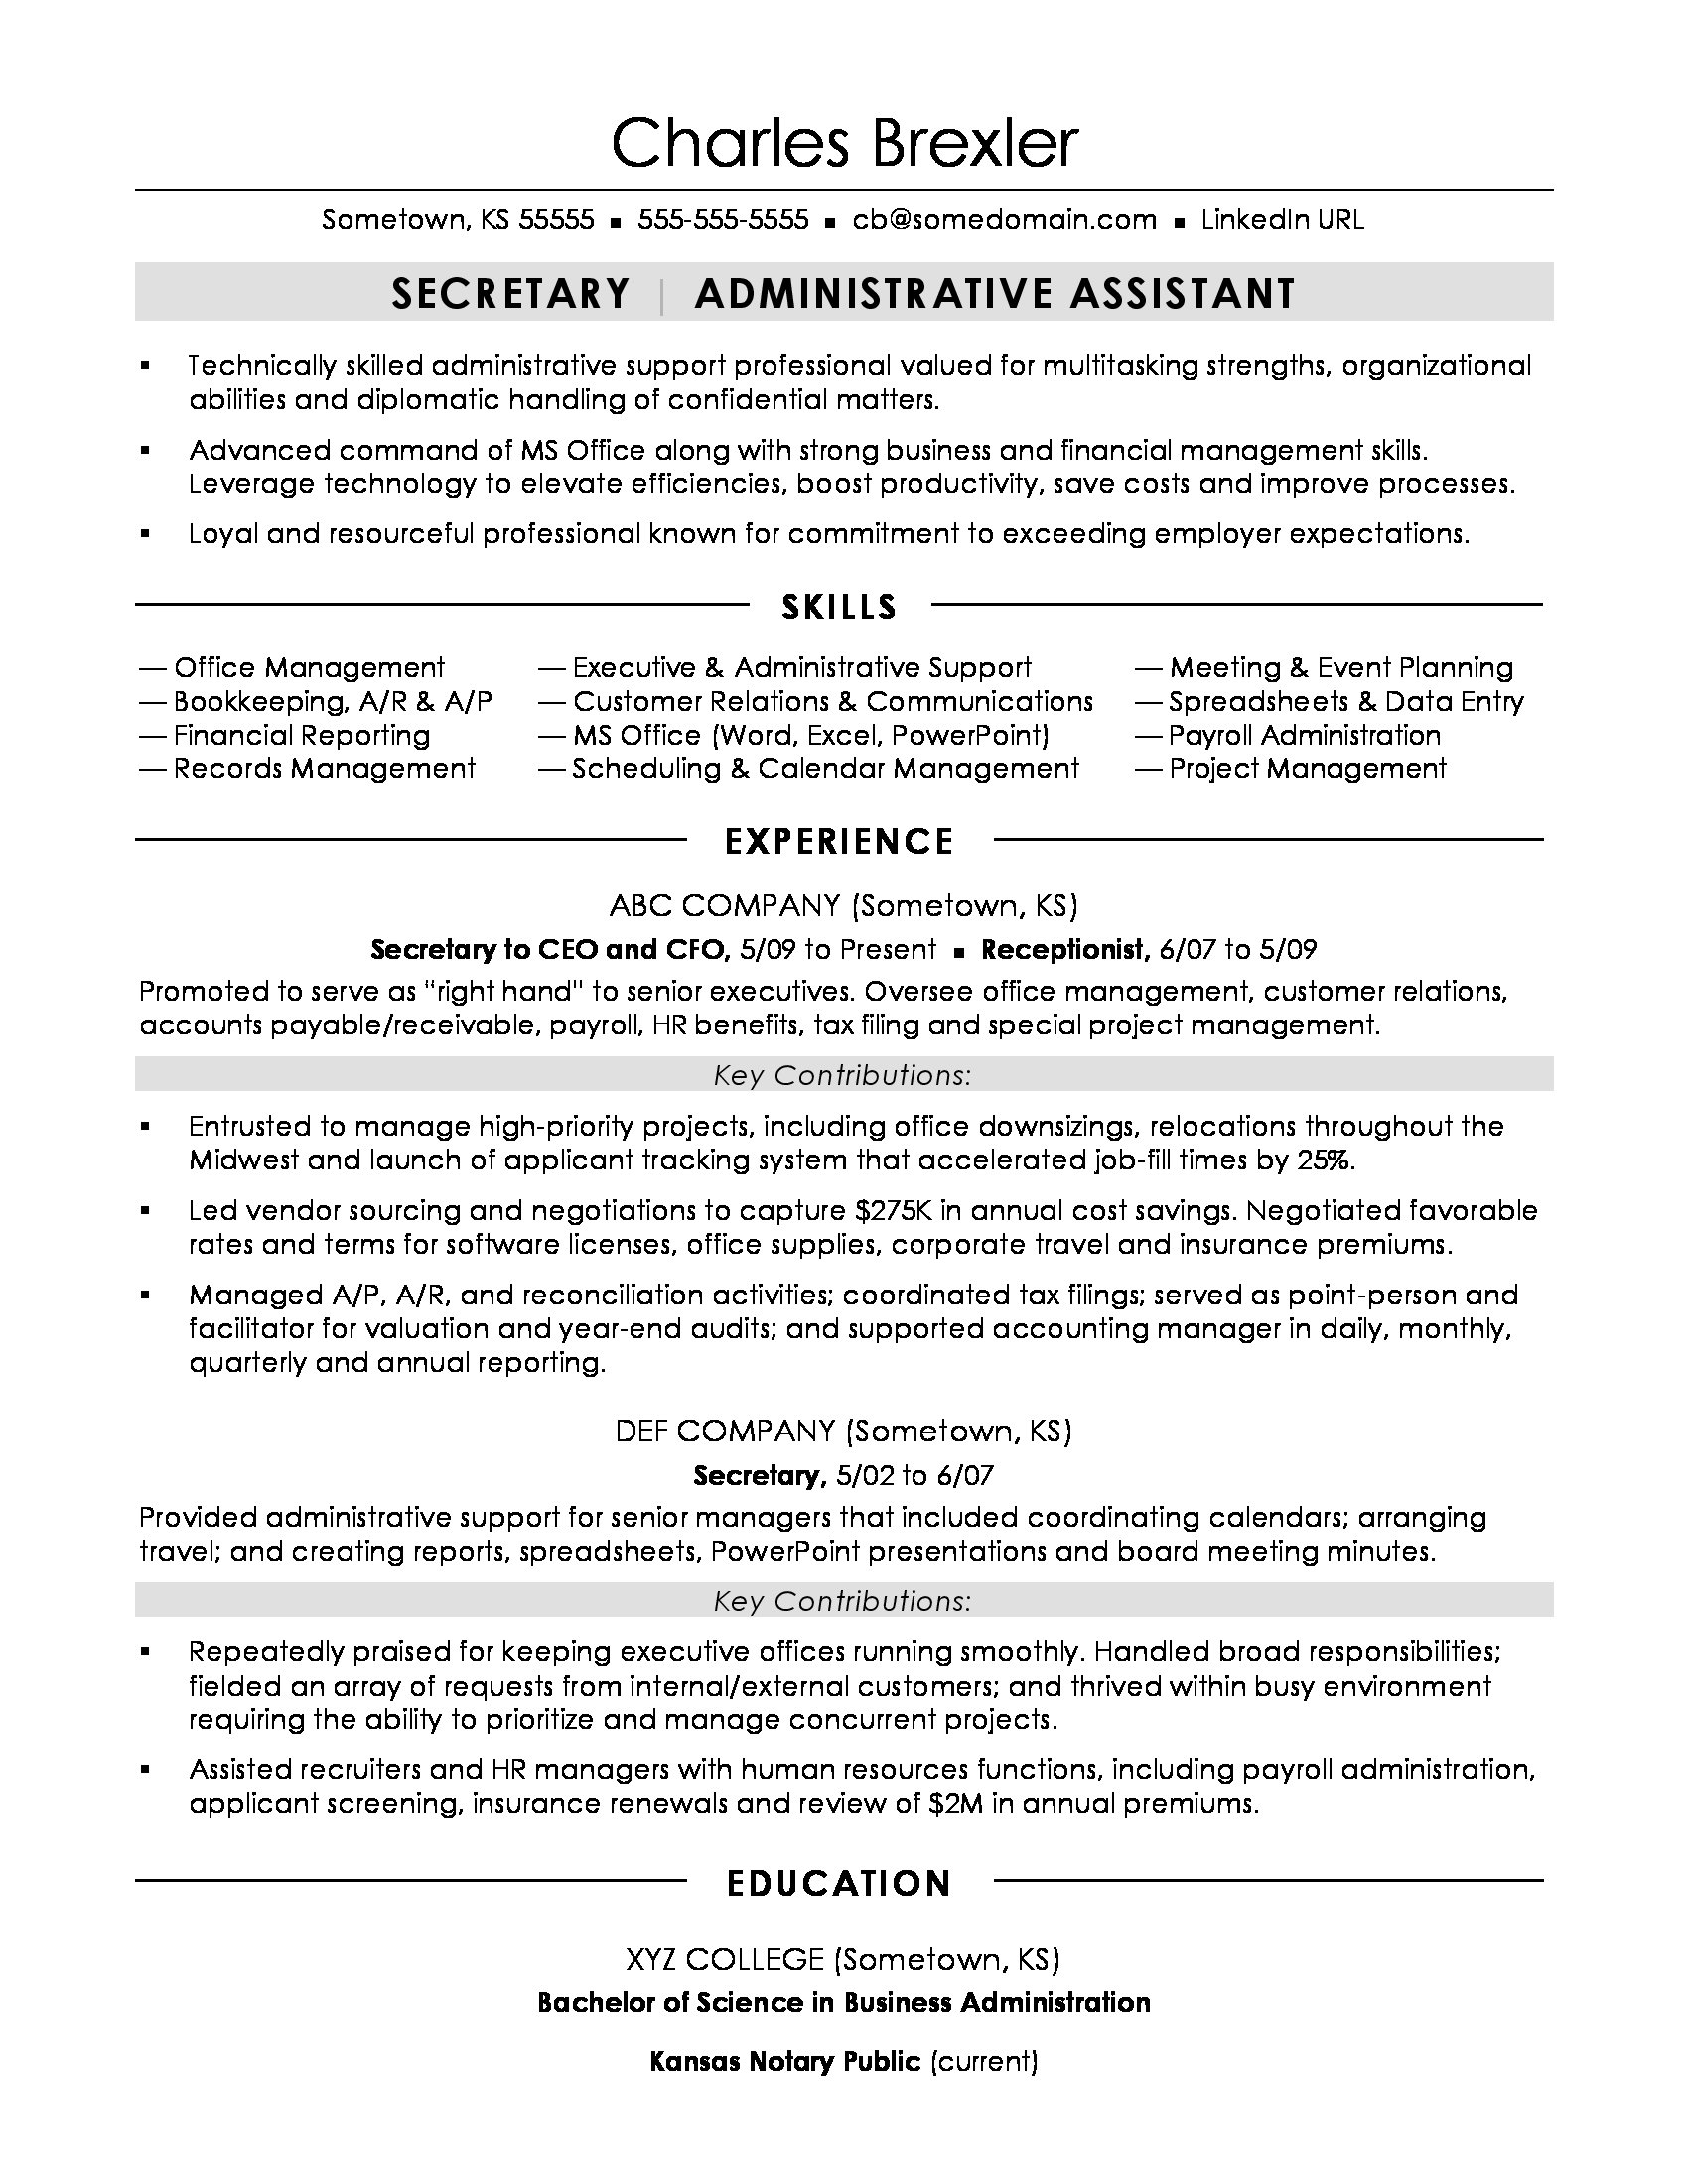 Secretary Resume Sample | Monster.com